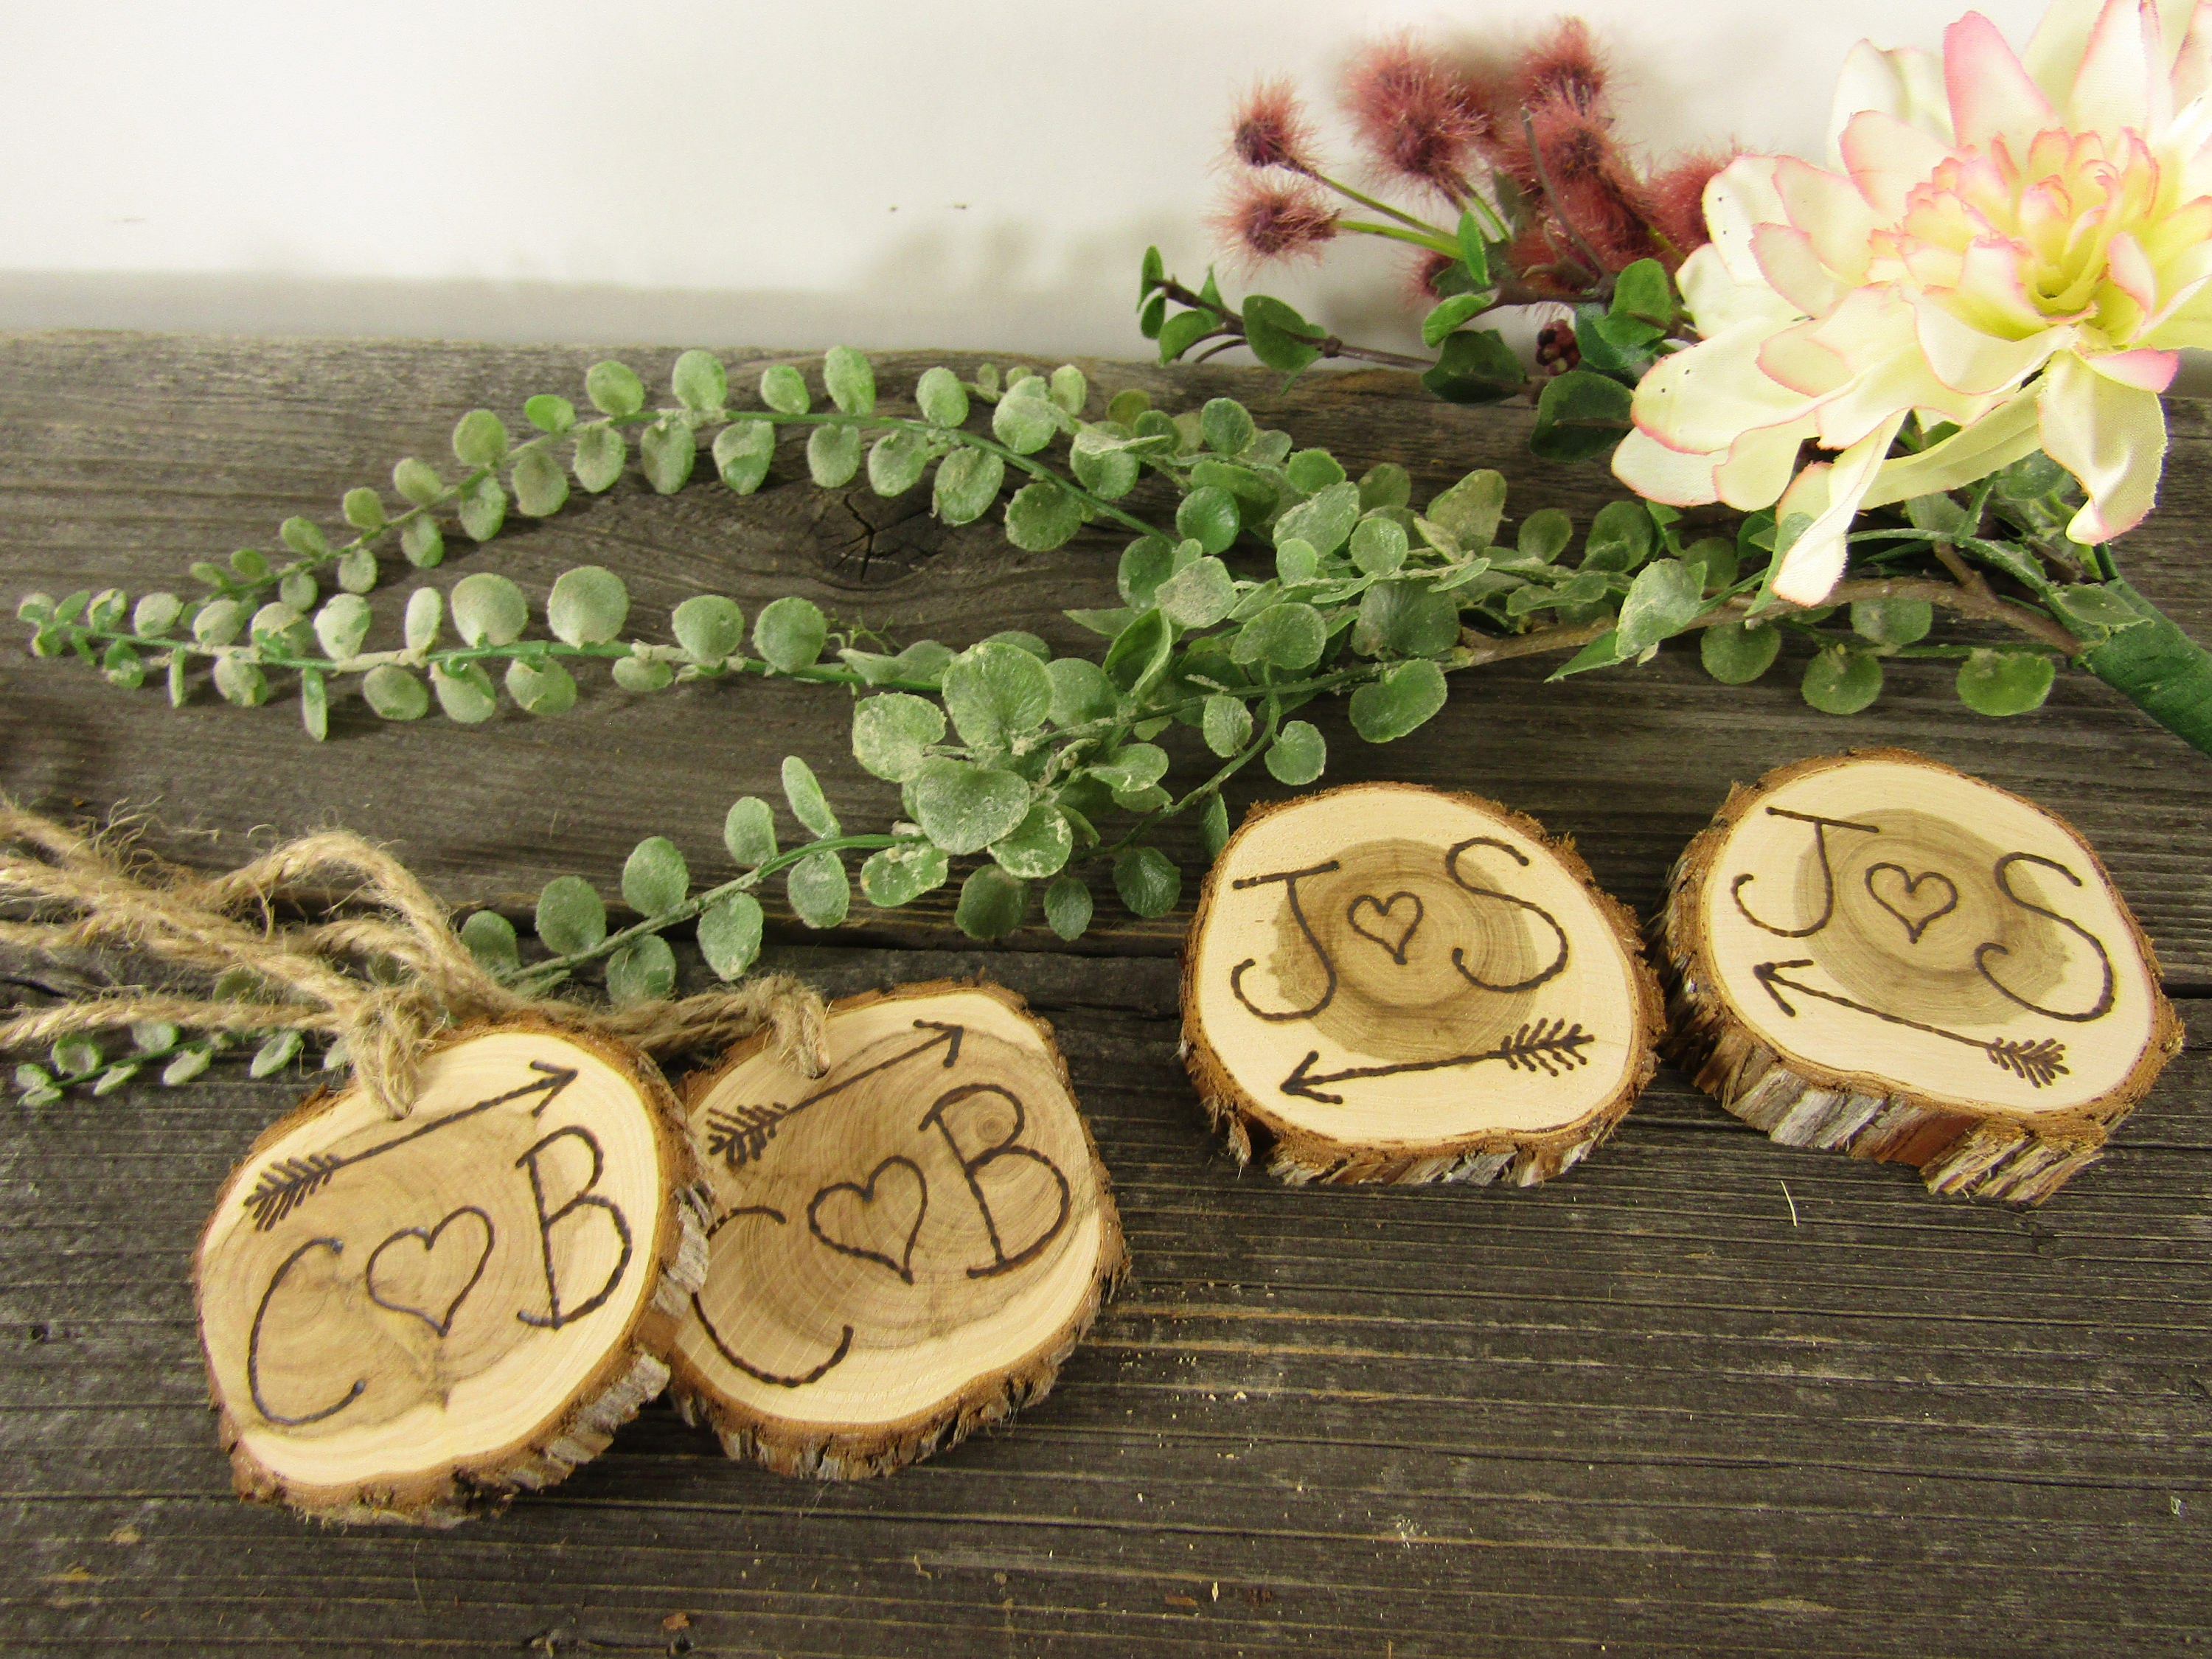 Personalized Wedding Wood Slices Rustic Mason Jar Labels Garden Centerpiece